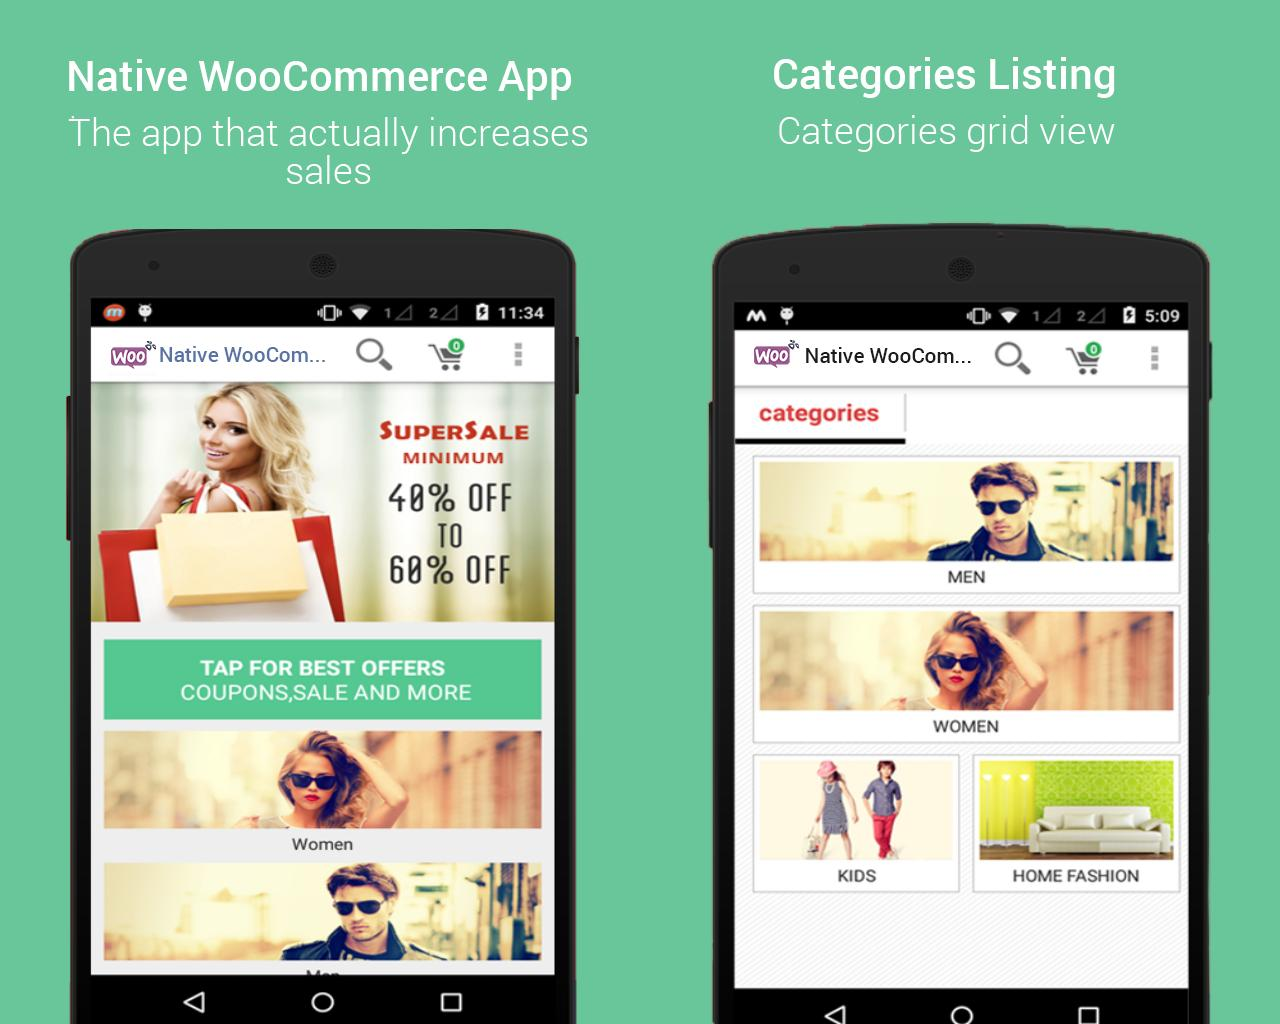 Native WooCommerce Mobile App for Android by dasinfomedia - 85622